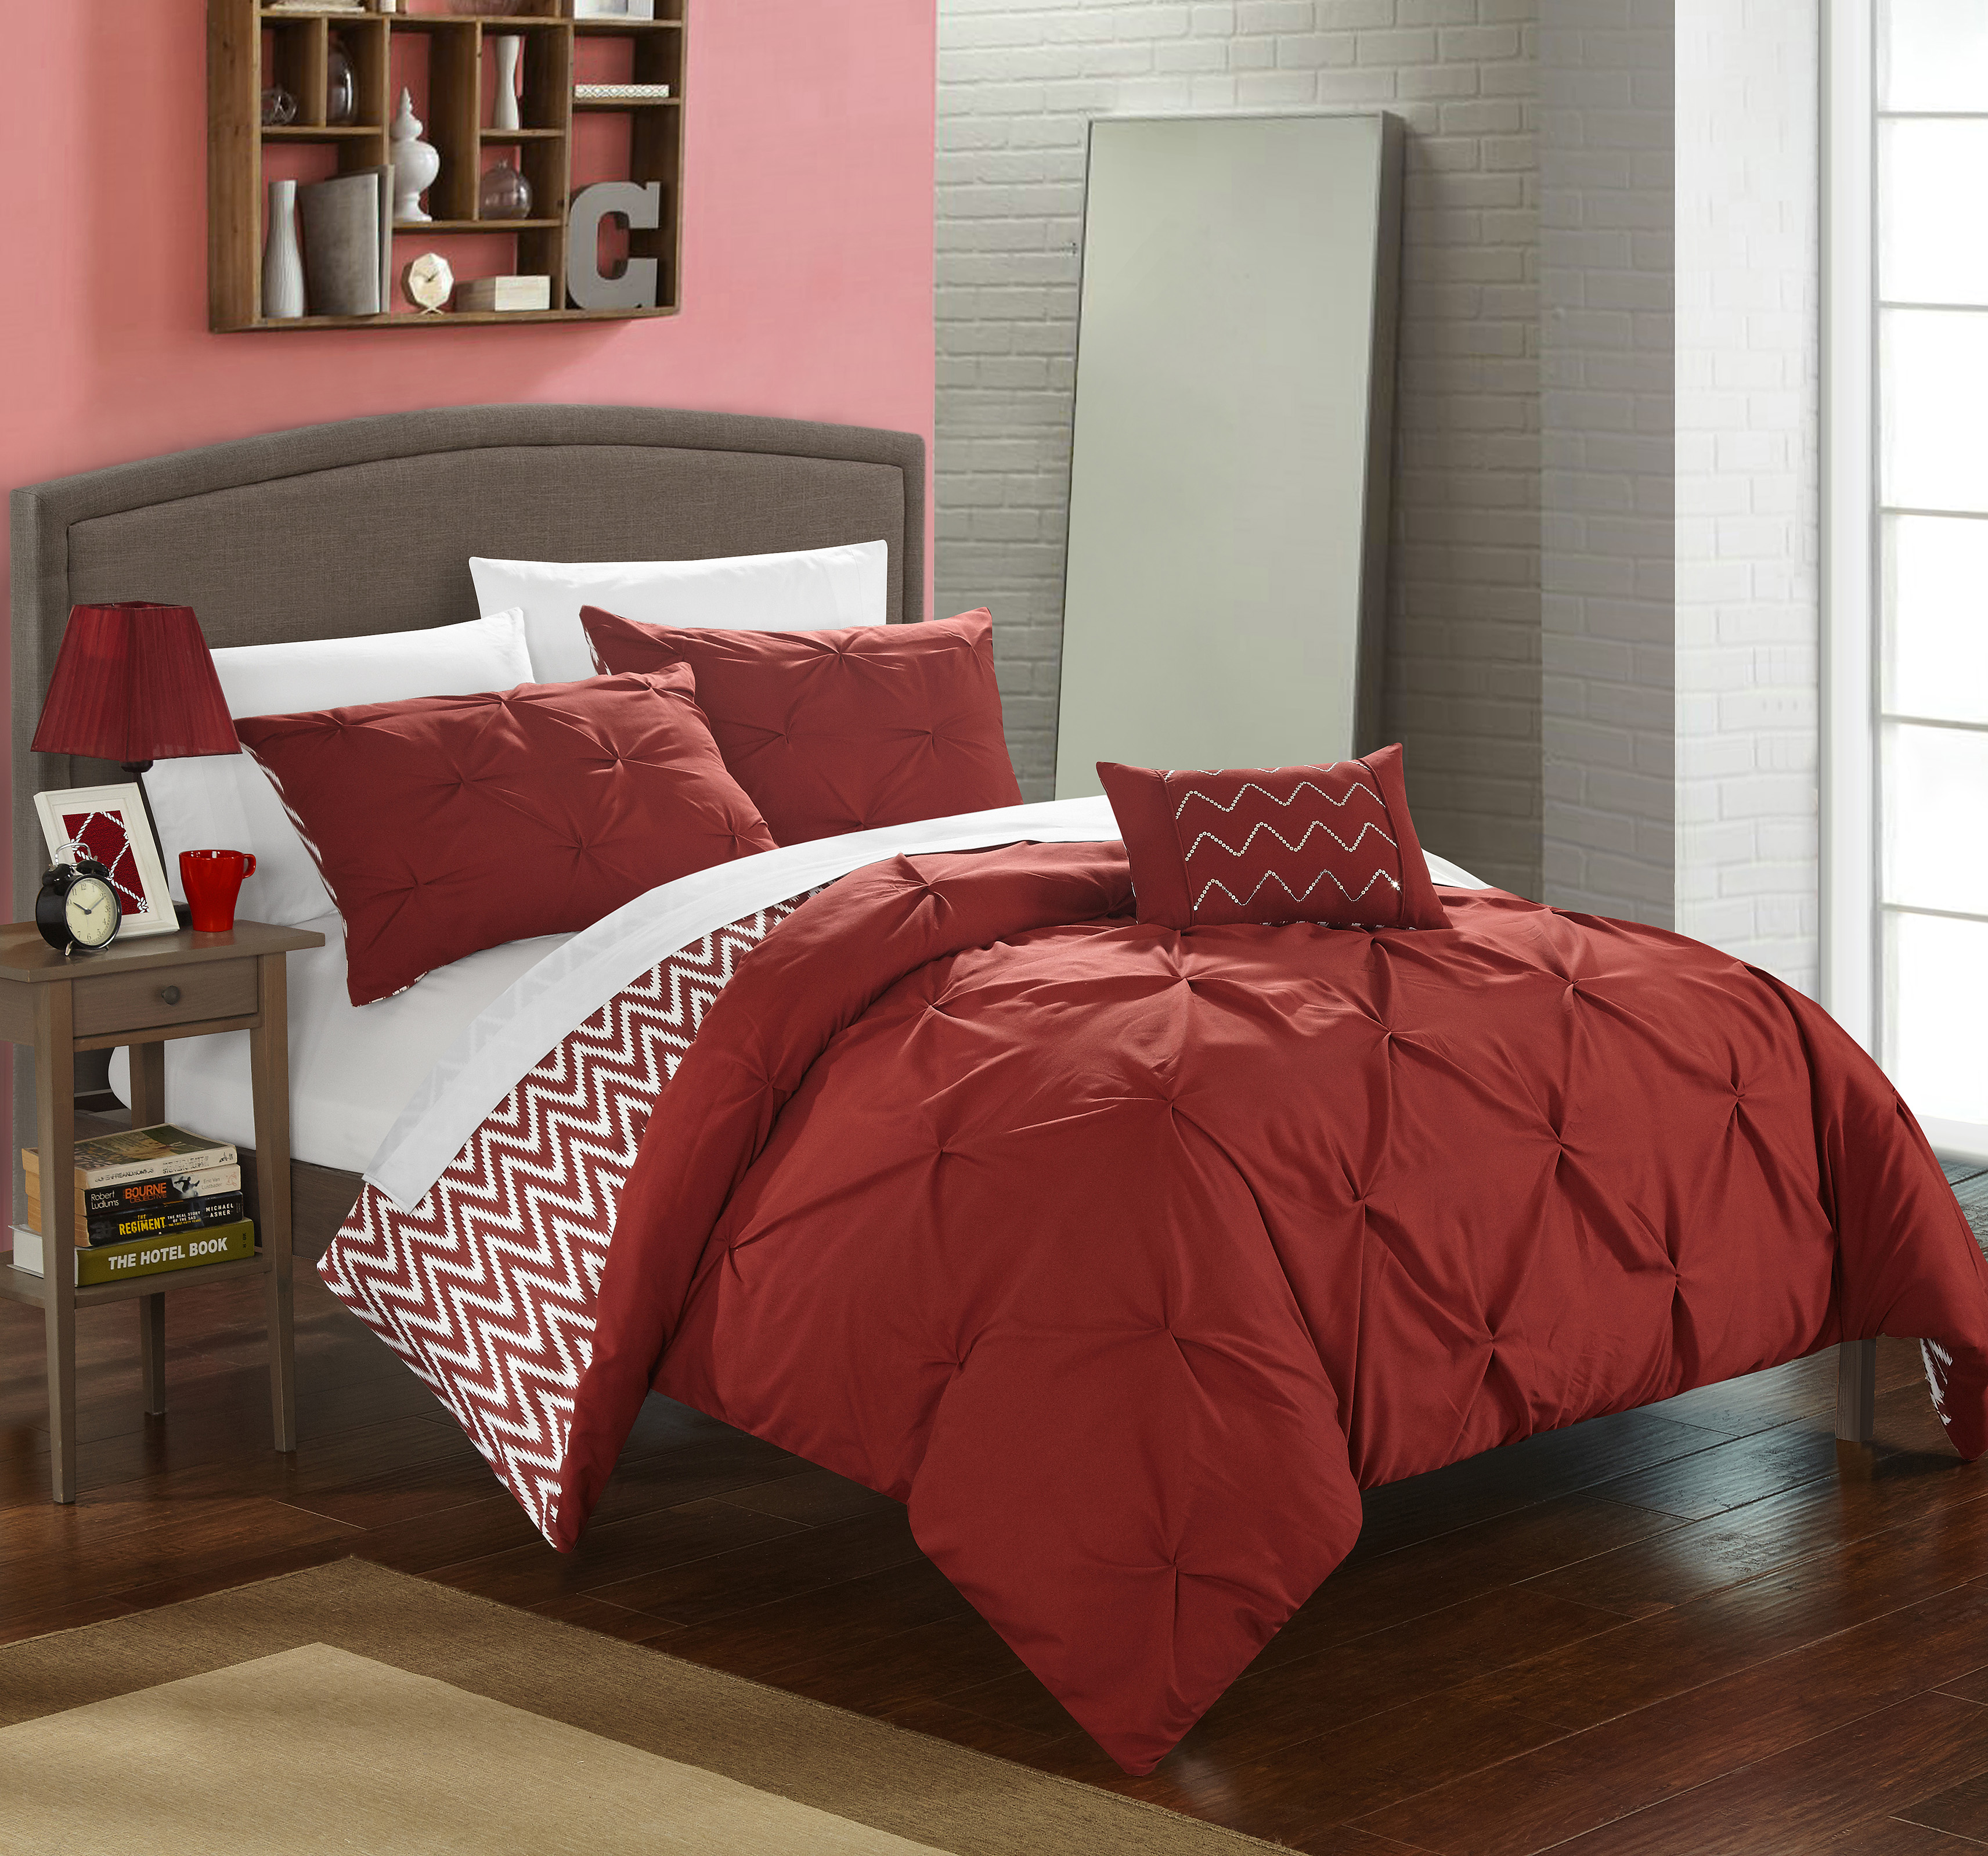 Chic Home 3-Piece Erin Pinch Pleated, REVERSIBLE Chevron Print ruffled and pleated complete Twin Comforter Set Brick Shams and Decorative Pillows included